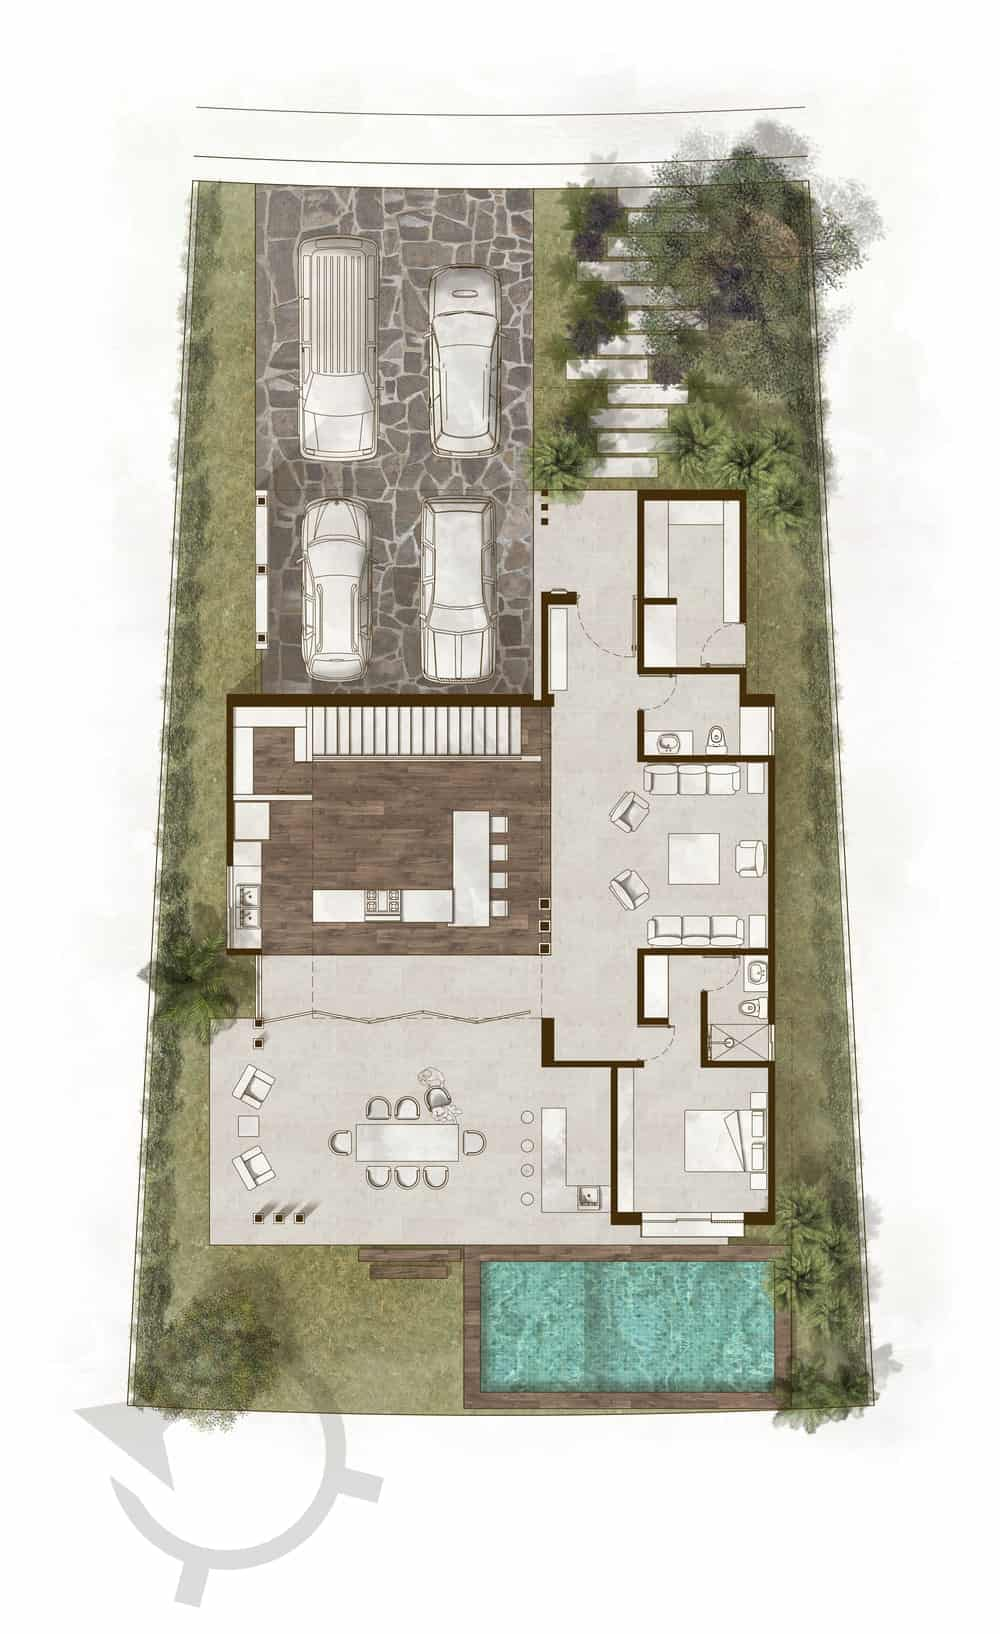 This is the illustration of the entire floor plan of the property with the first floor of the interior and the surrounding landscape.